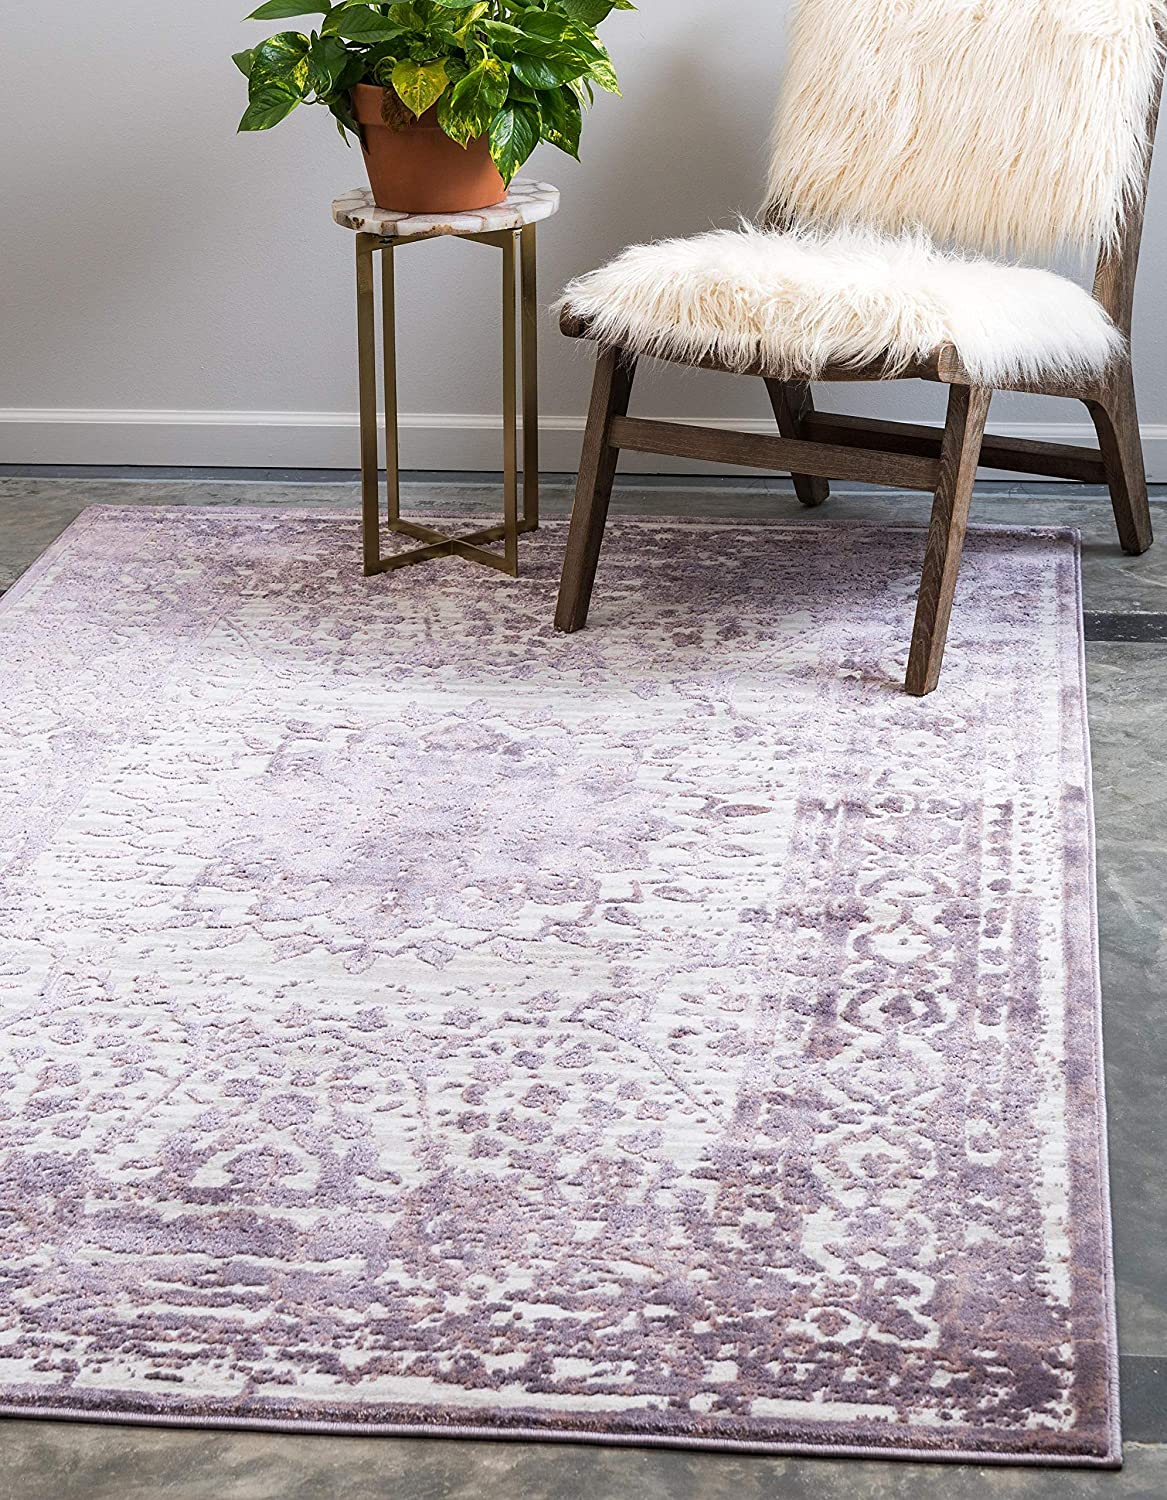 Unique Loom Aberdeen Collection Textured Traditional Vintage Tone Area Rug, 9' 0 x 12' 0, Violet/Ivory